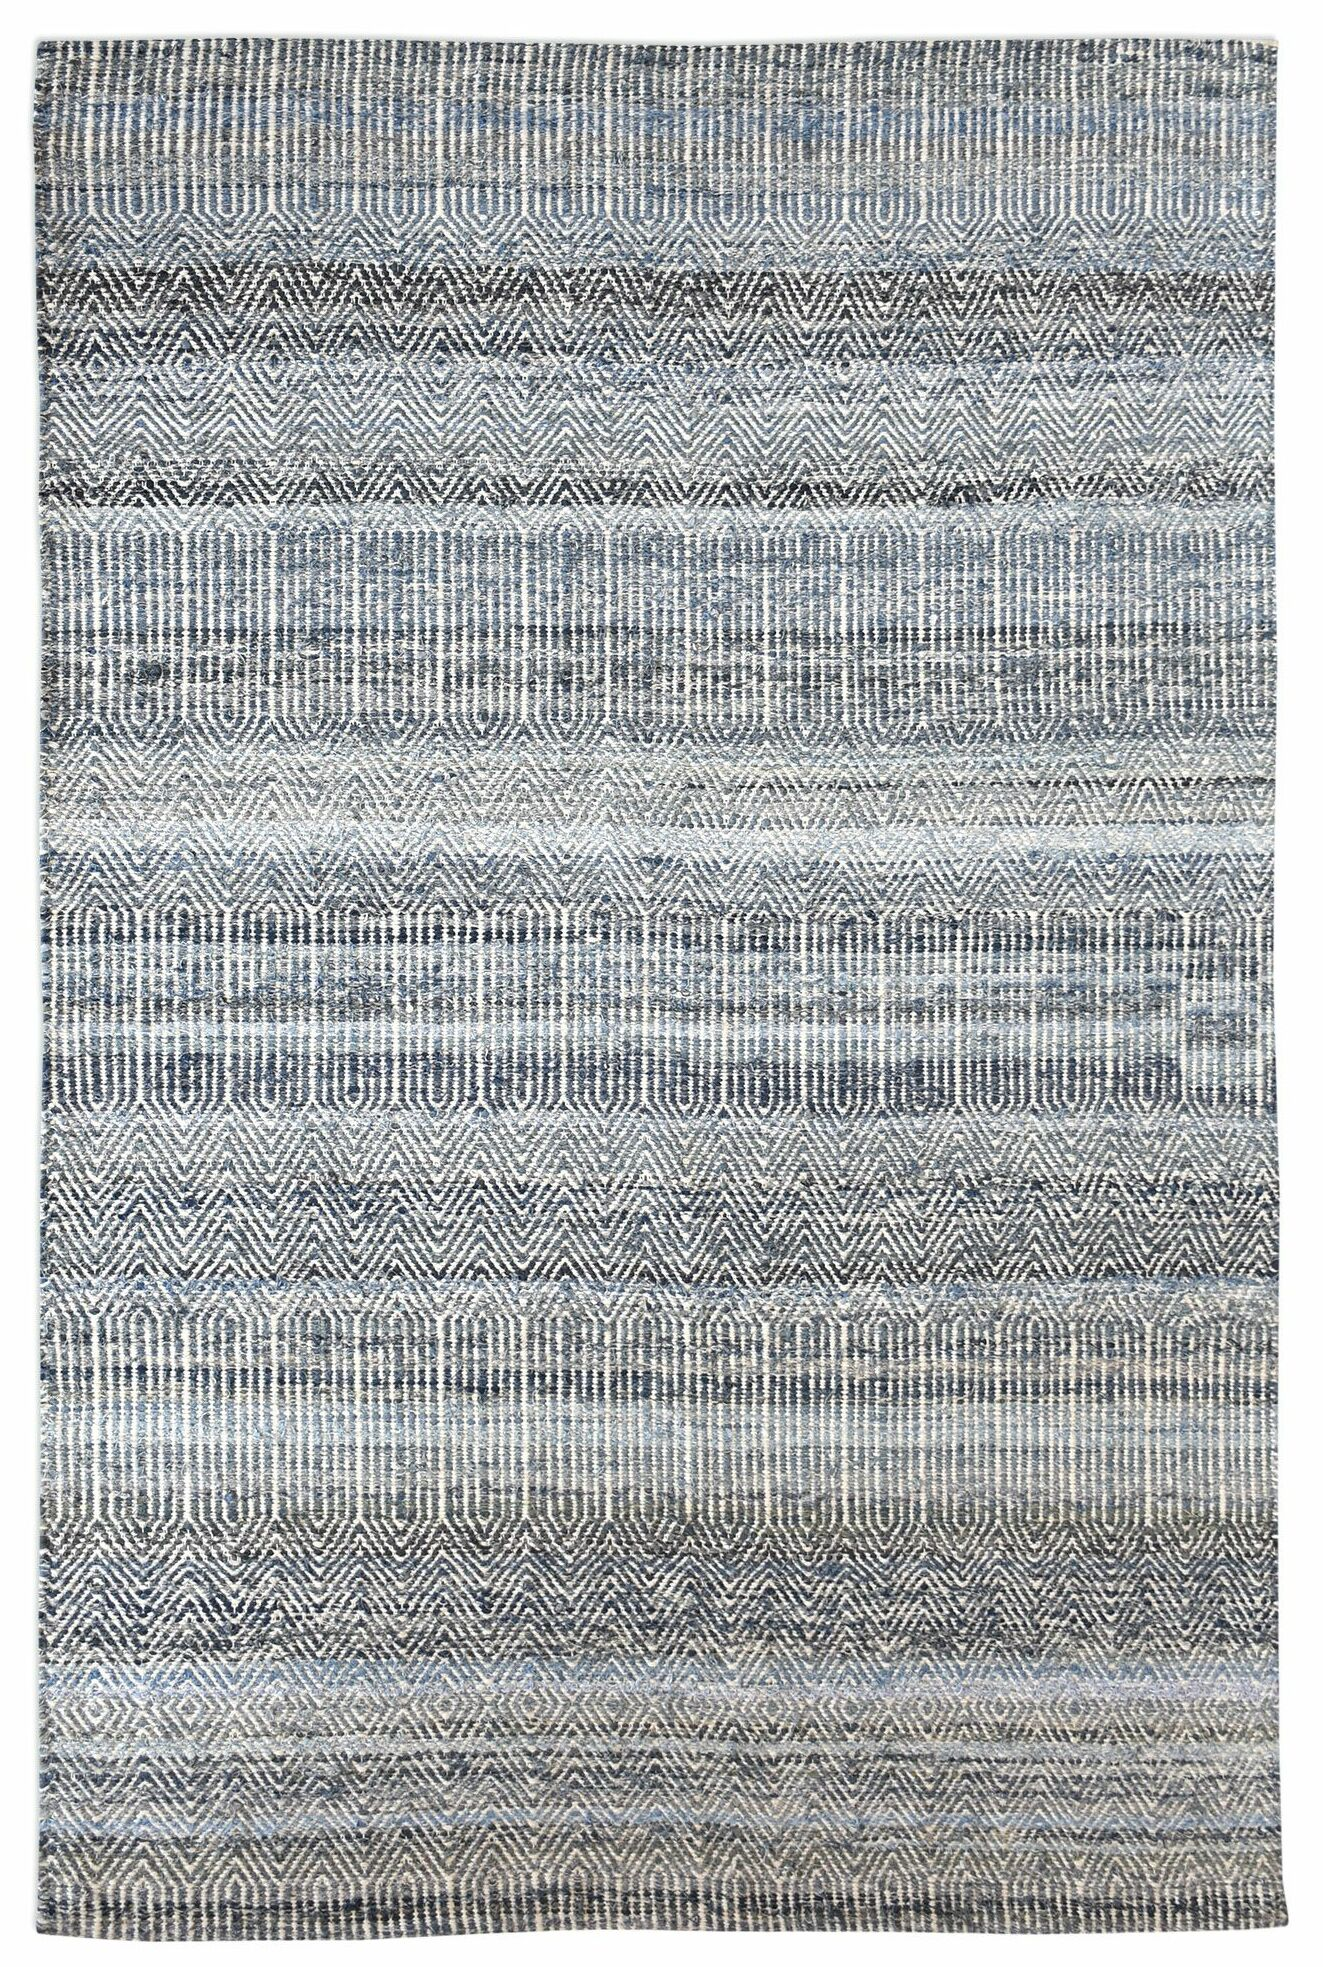 Cleavenger Hand-Woven Blue Area Rug Rug Size: 9' x 12'